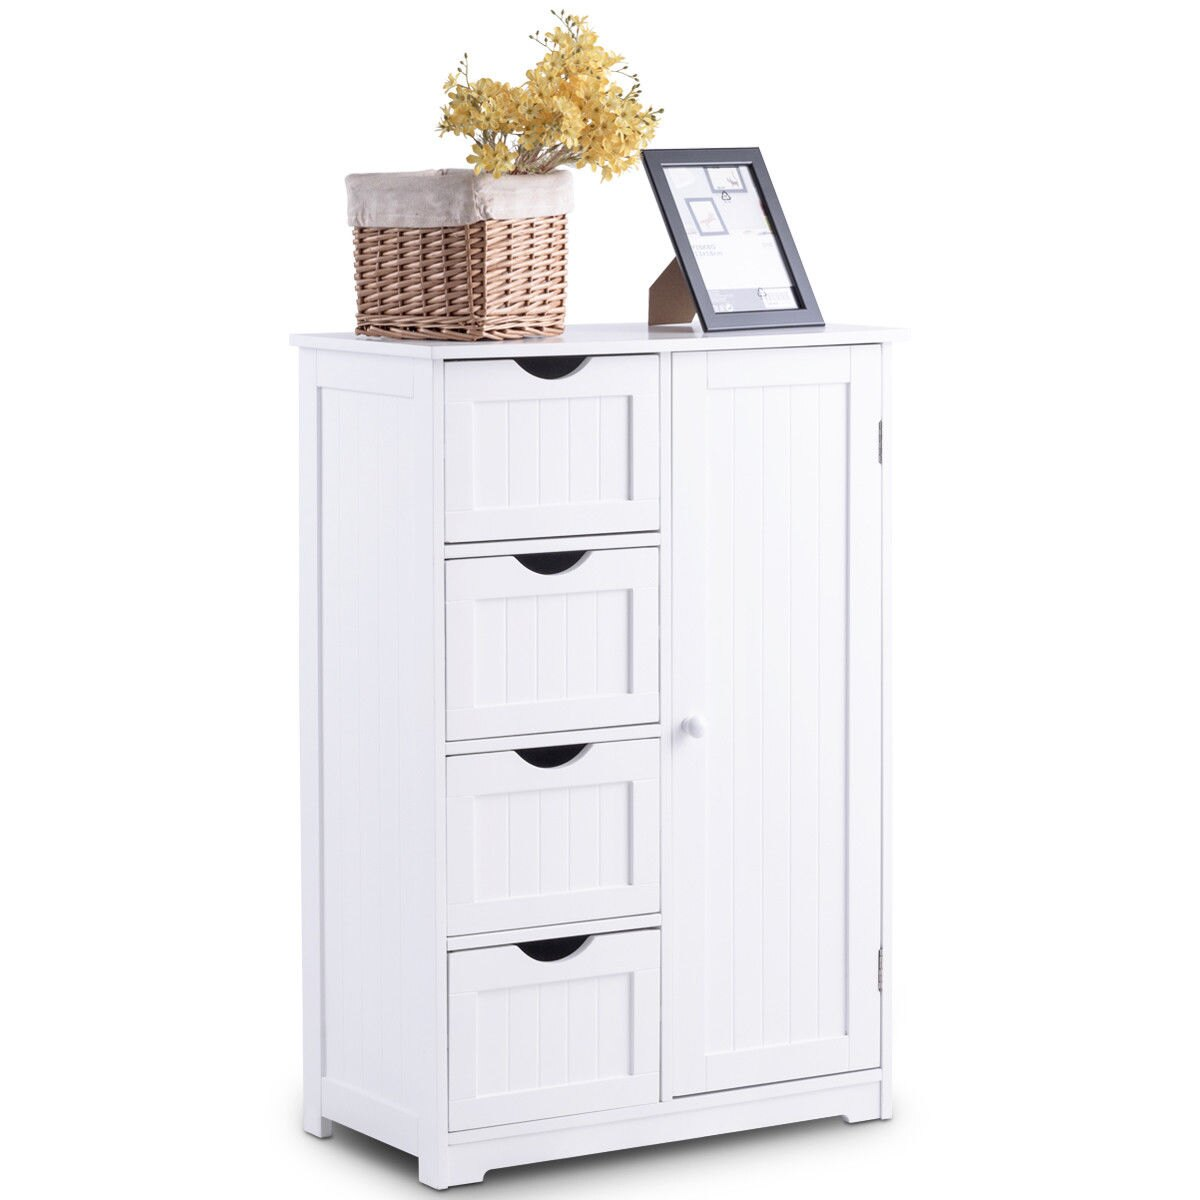 Costway Wooden 4 Drawer Bathroom Cabinet Storage Cupboard 2 Shelves Free  Standing White 1